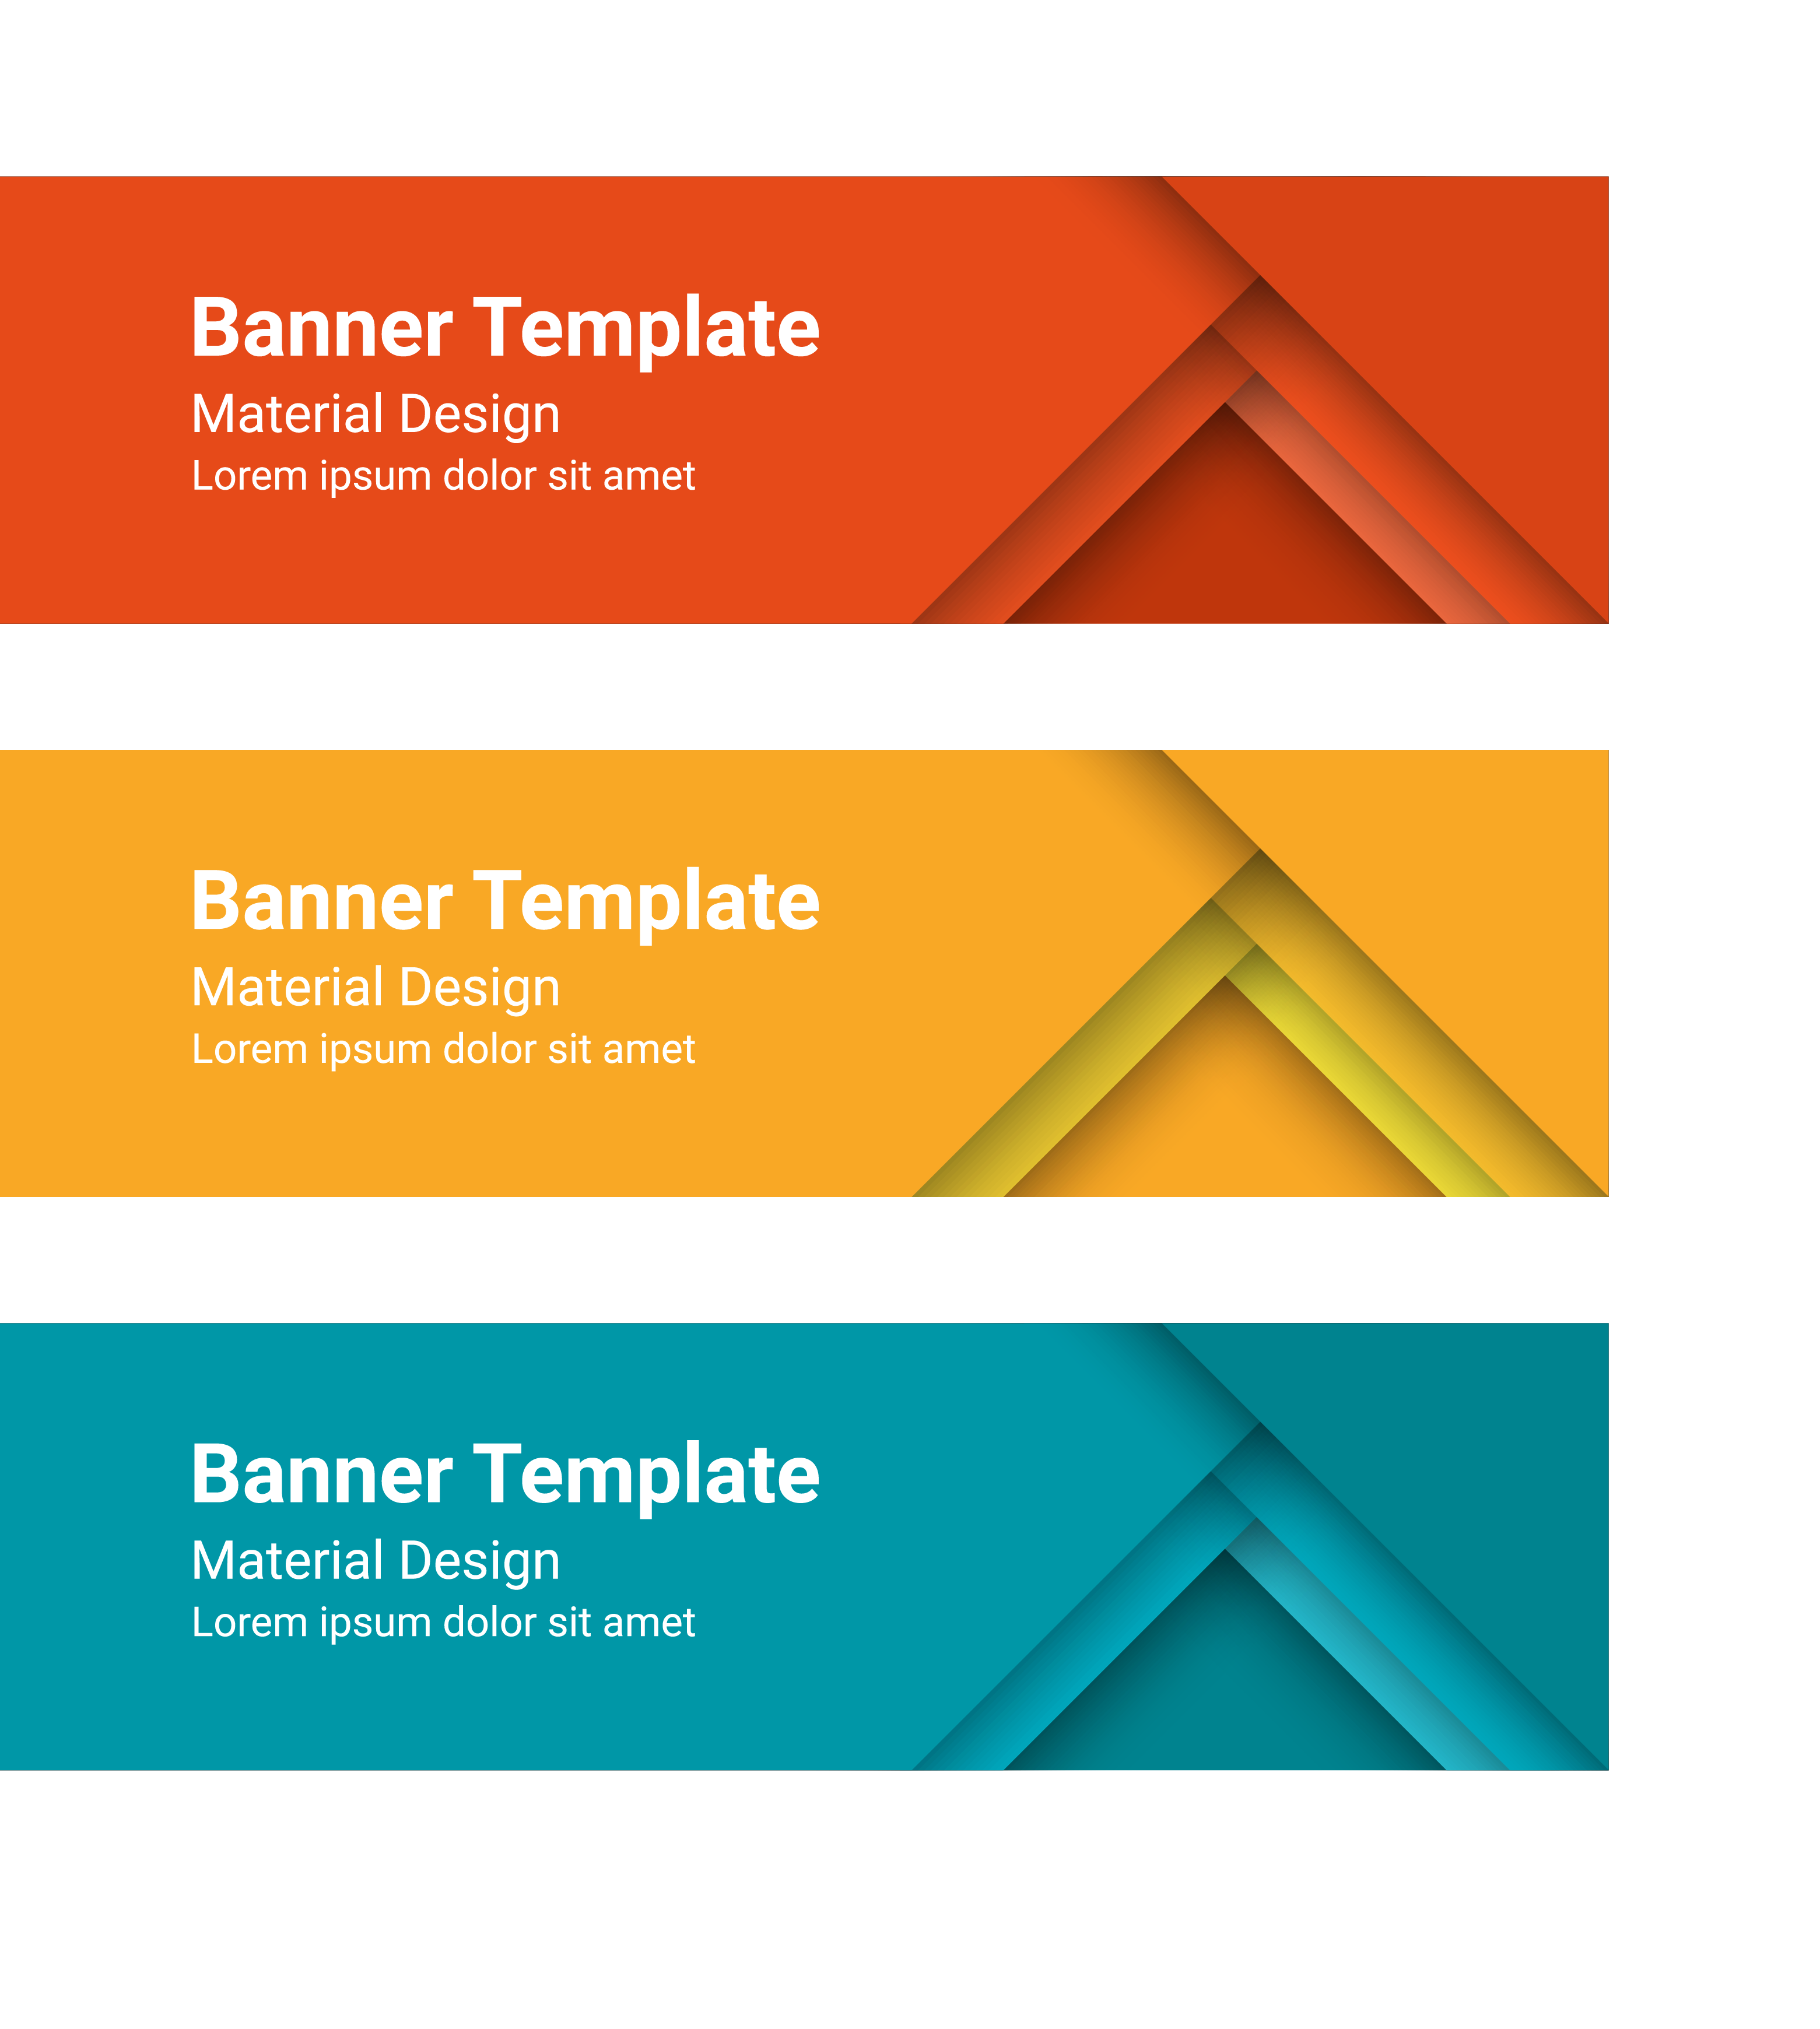 Vector rehabilitation banners. Web banner template material